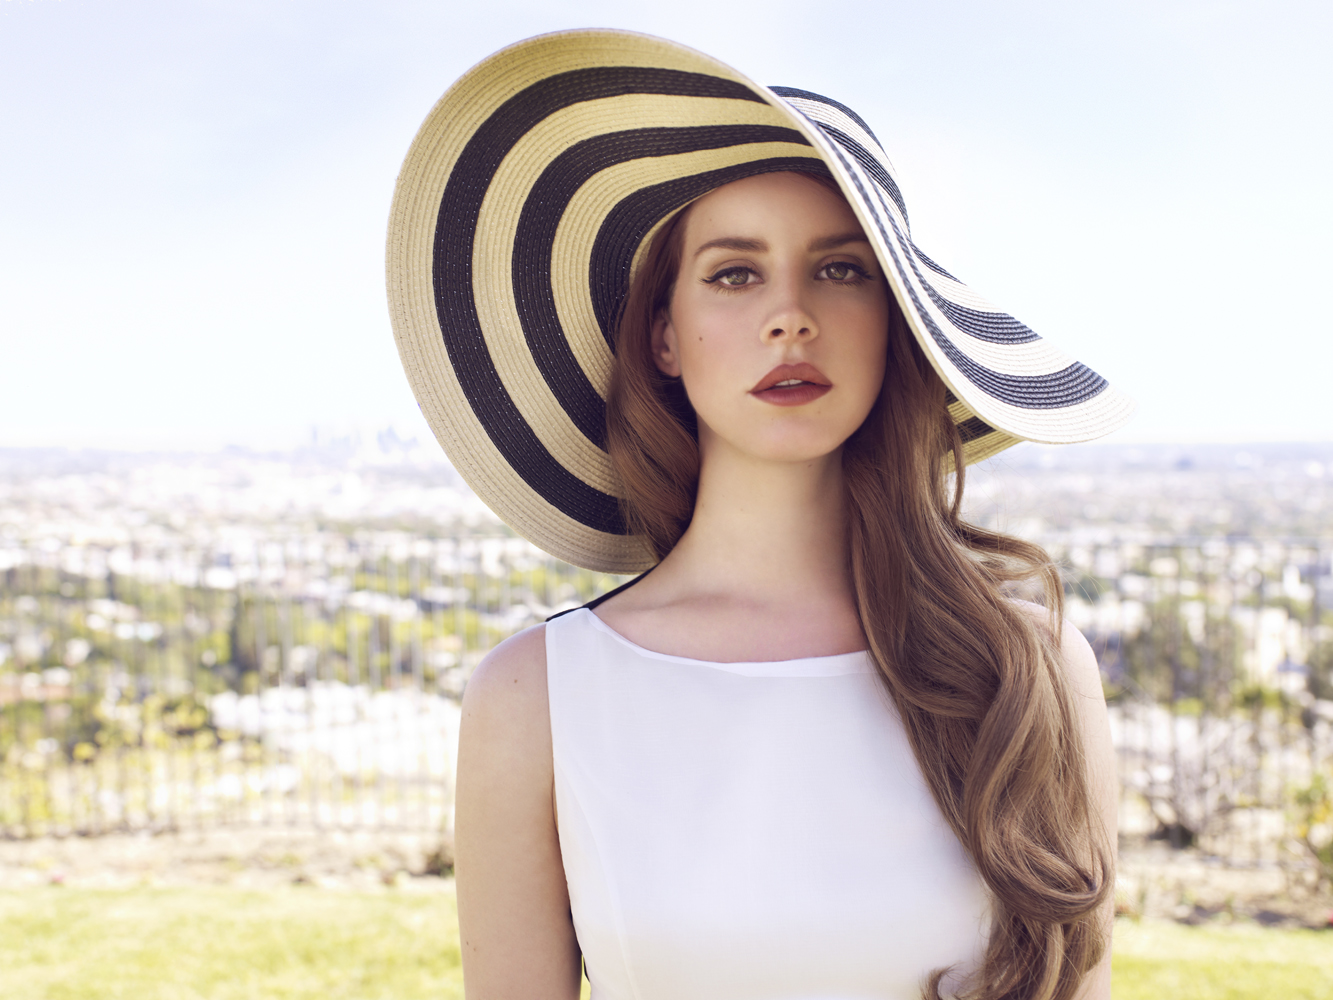 Lana Del Rey images Lana HD wallpaper and background photos